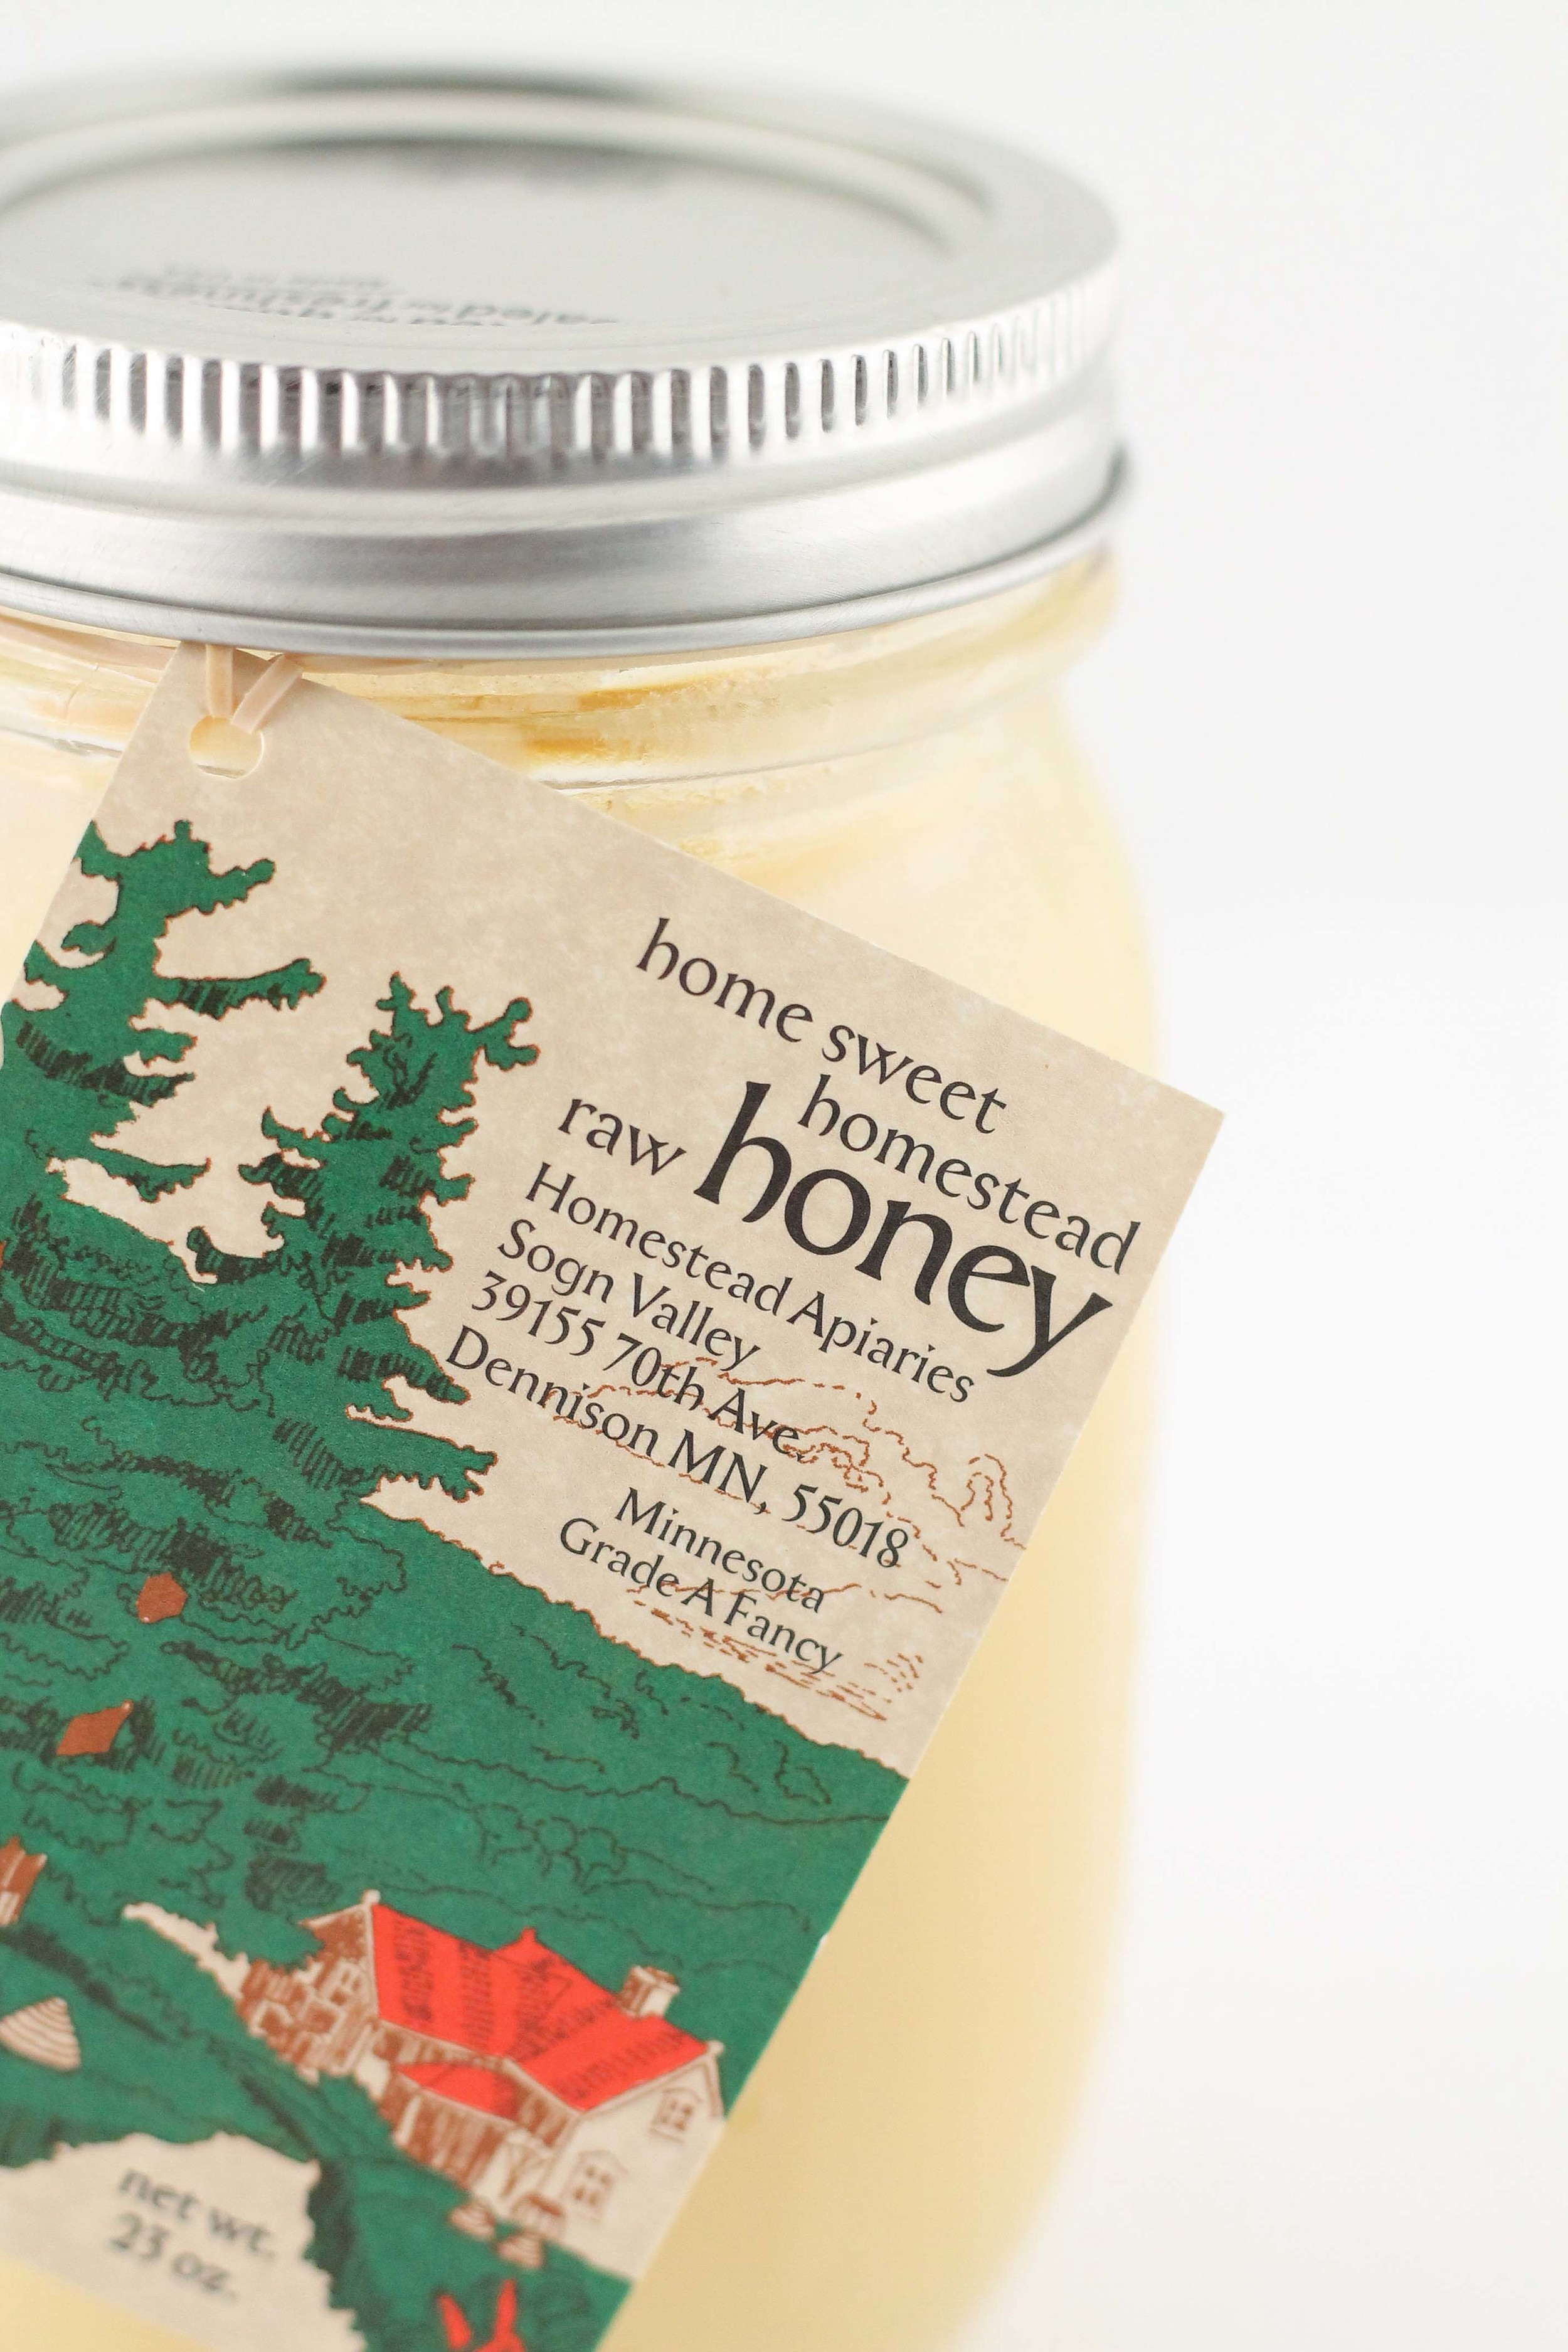 Paleo Pantry Items, Honey, Raw, Real Food, Minnesota Made, Delicious